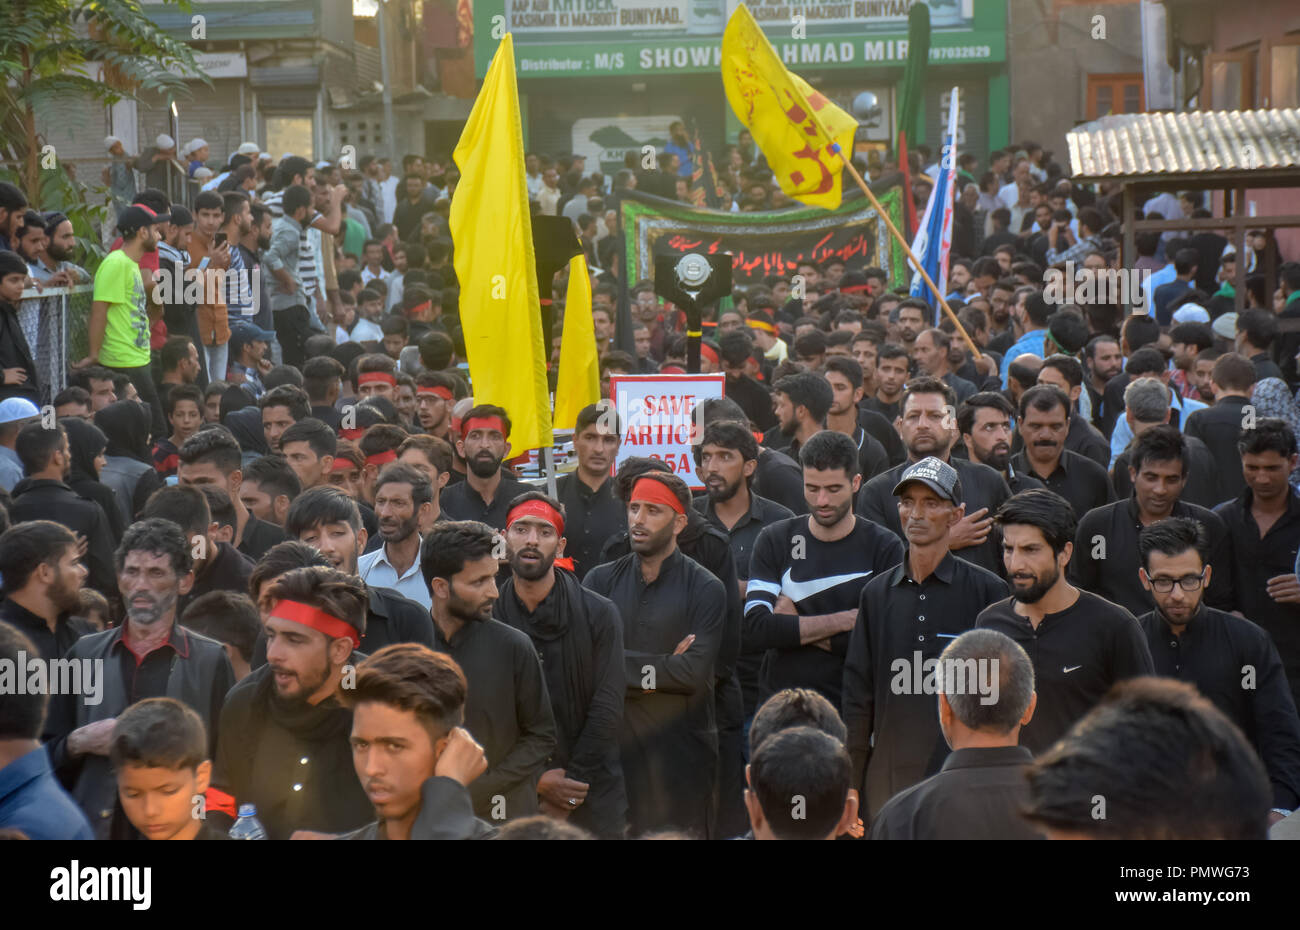 Kashmiri Shia Muslims seen performing rituals with flags during the procession. 7th day of Ashura procession which marks the martyrdom anniversary of the Prophet Muhammed's grandson the revered Imam Hussein who was killed in Karbala, Iraq in 680 AD in southern Iraq in the seventh century. - Stock Image